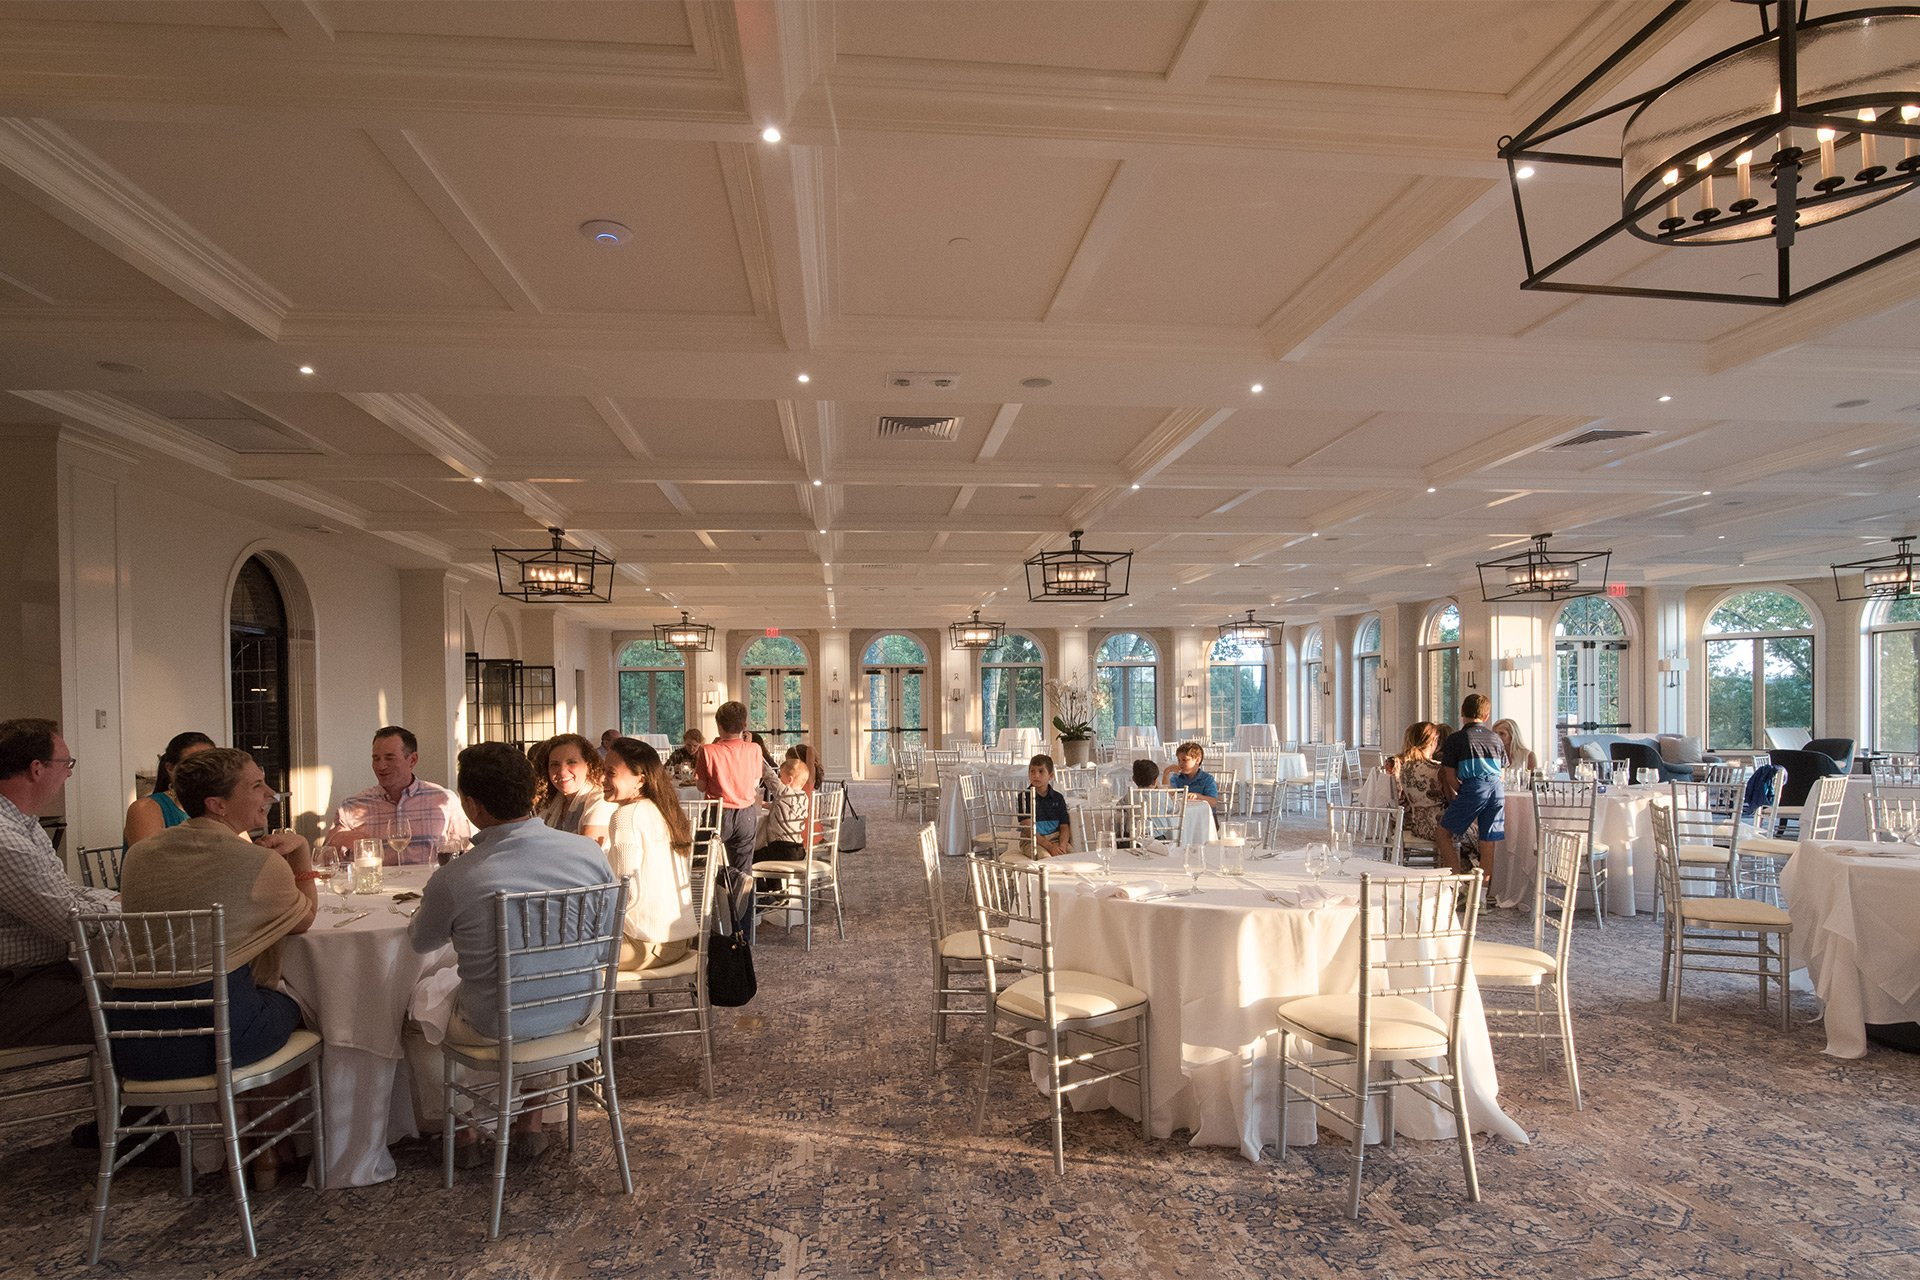 murphy-brothers-contracting-commercial-ardsley-country-club-interior-dining-room-02